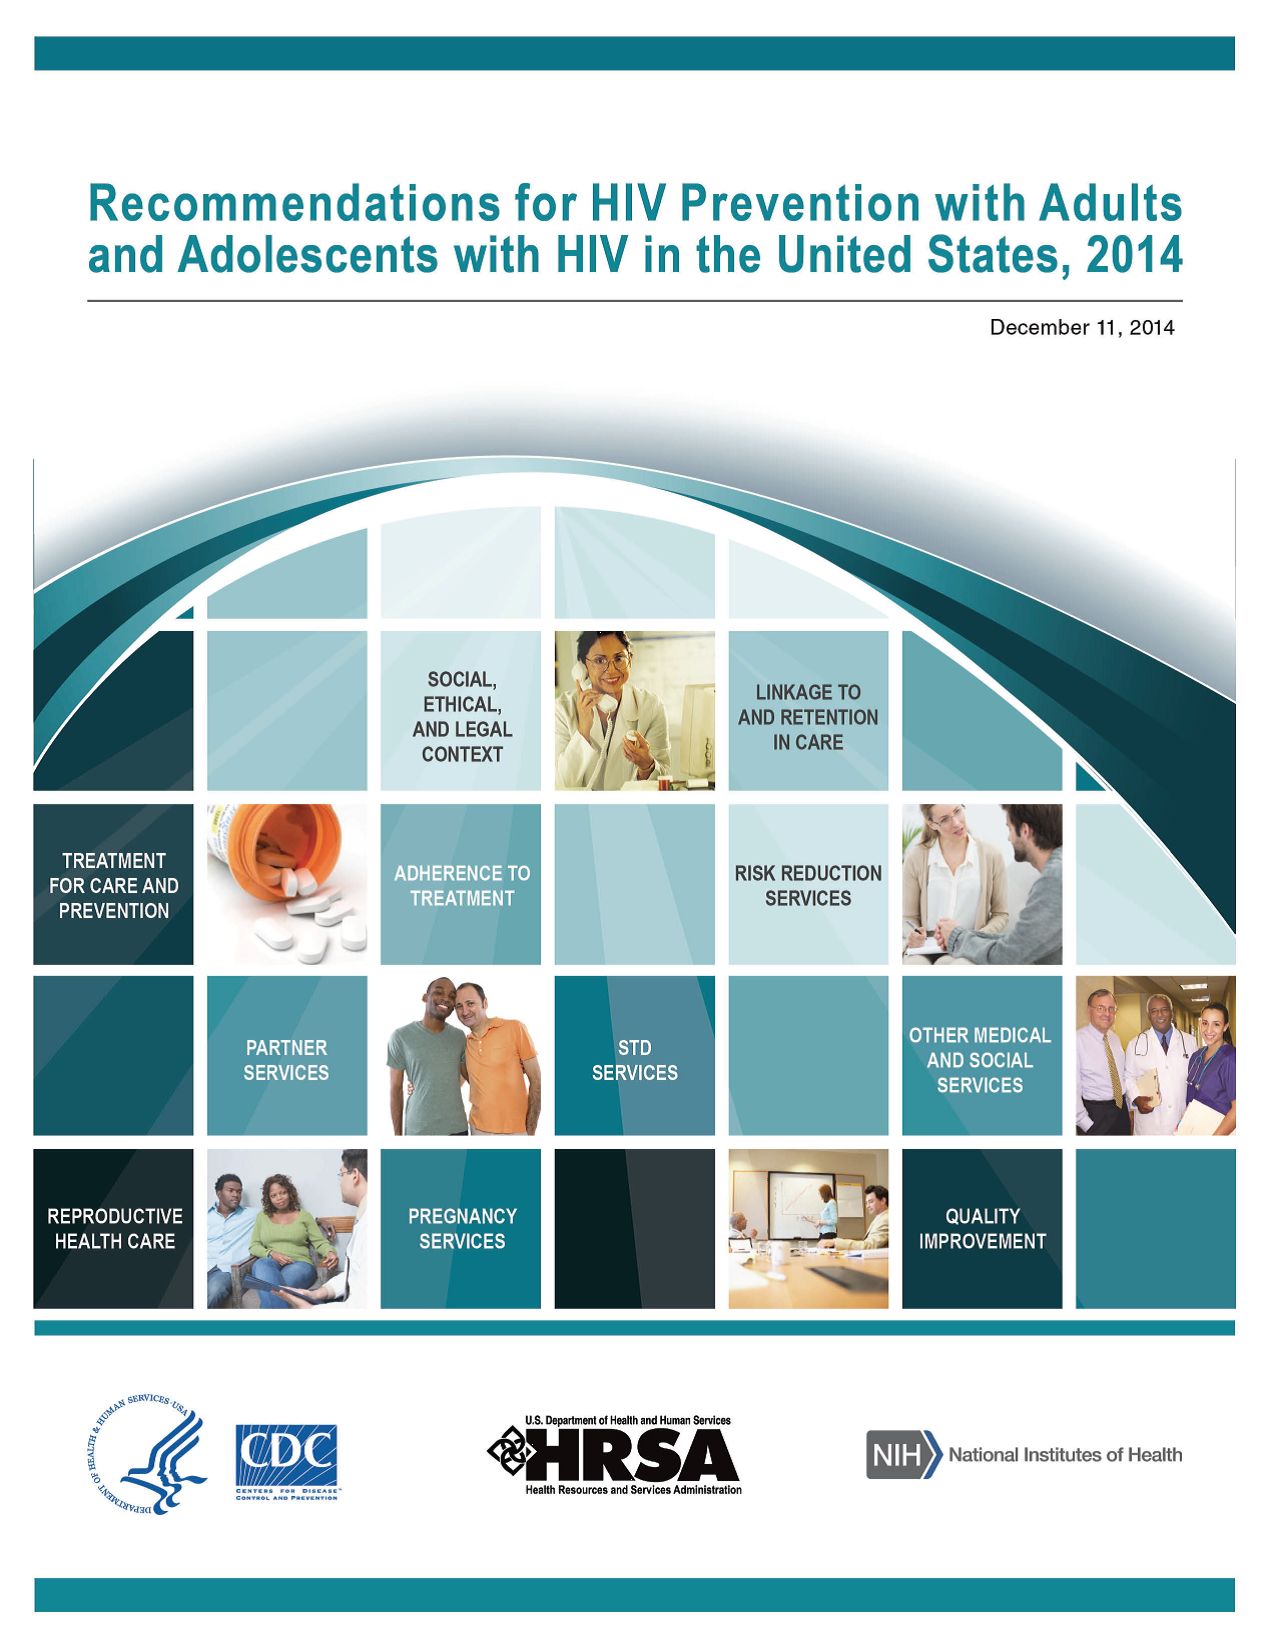 Recommendations on HIV Prevention with Adults and Adolescents with HIV